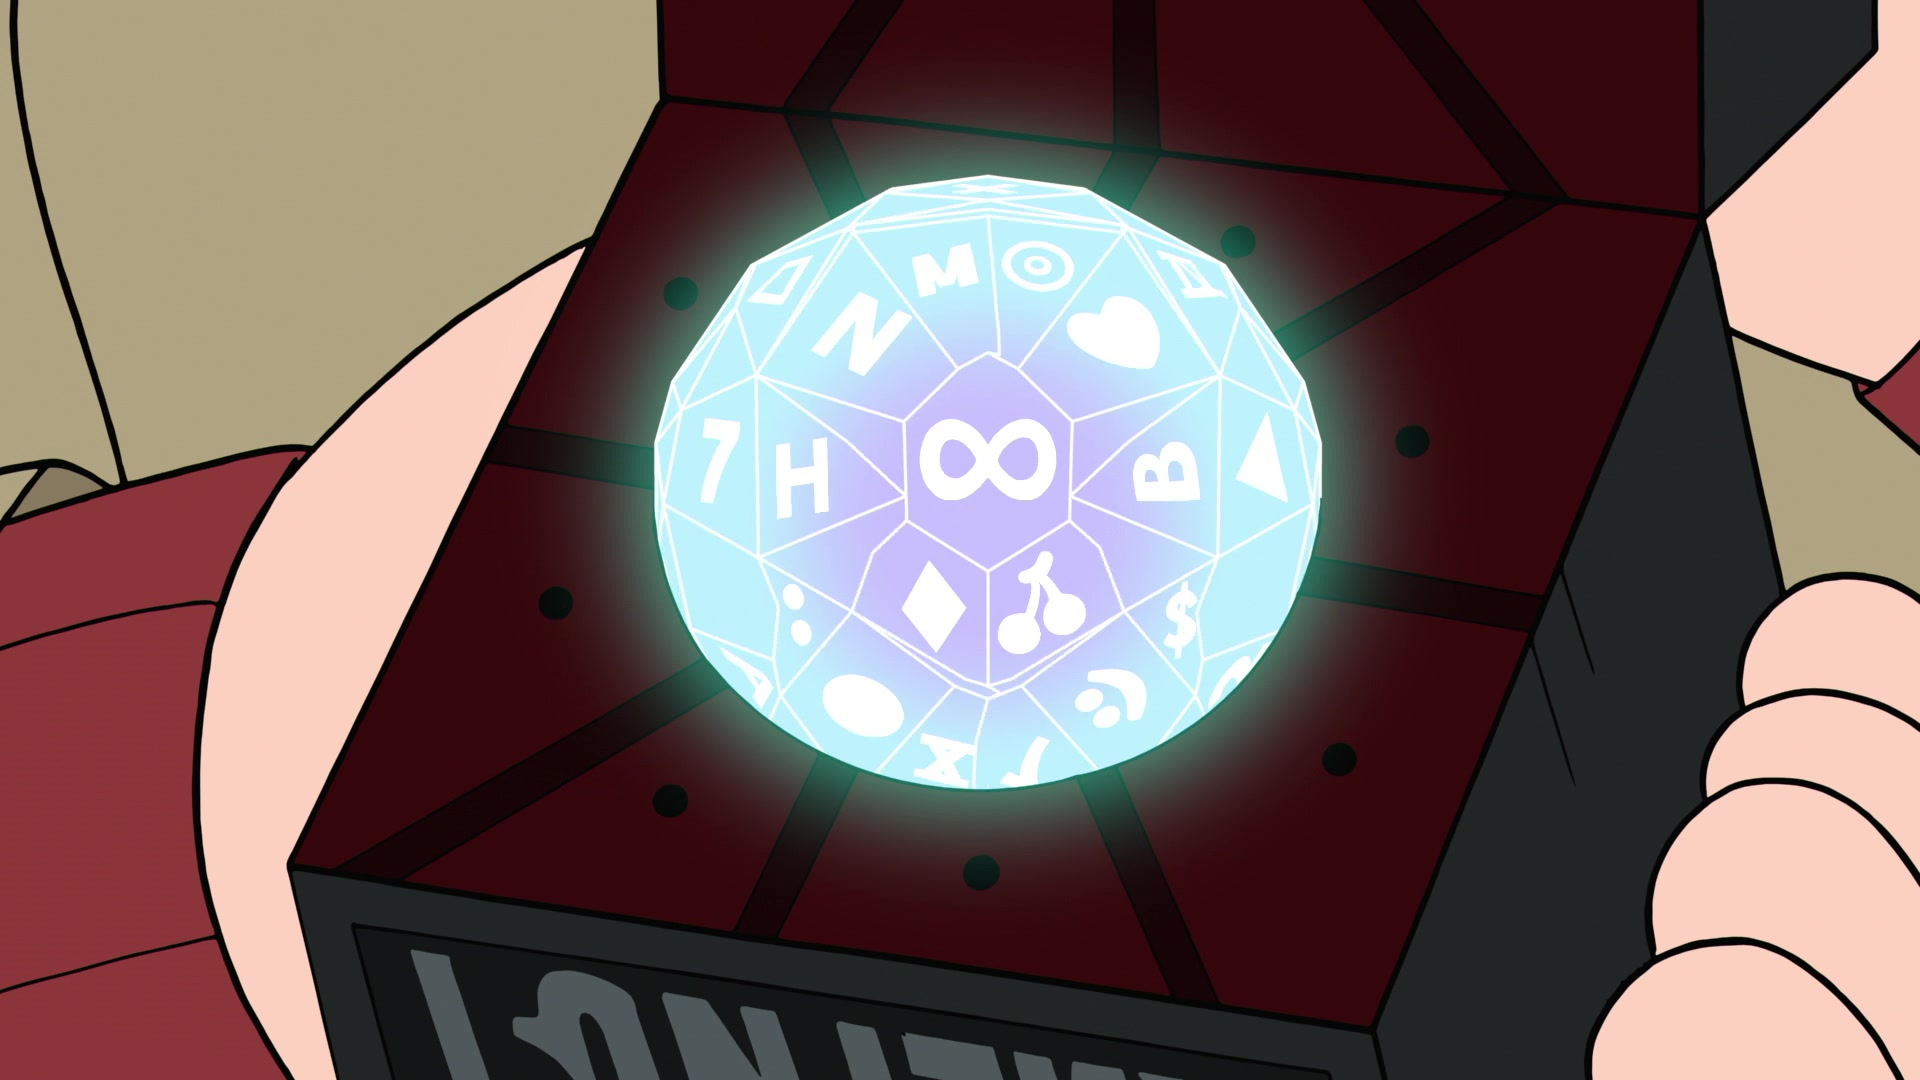 Infinity Sided Dice Gravity Falls Wiki Fandom Powered By Wikia